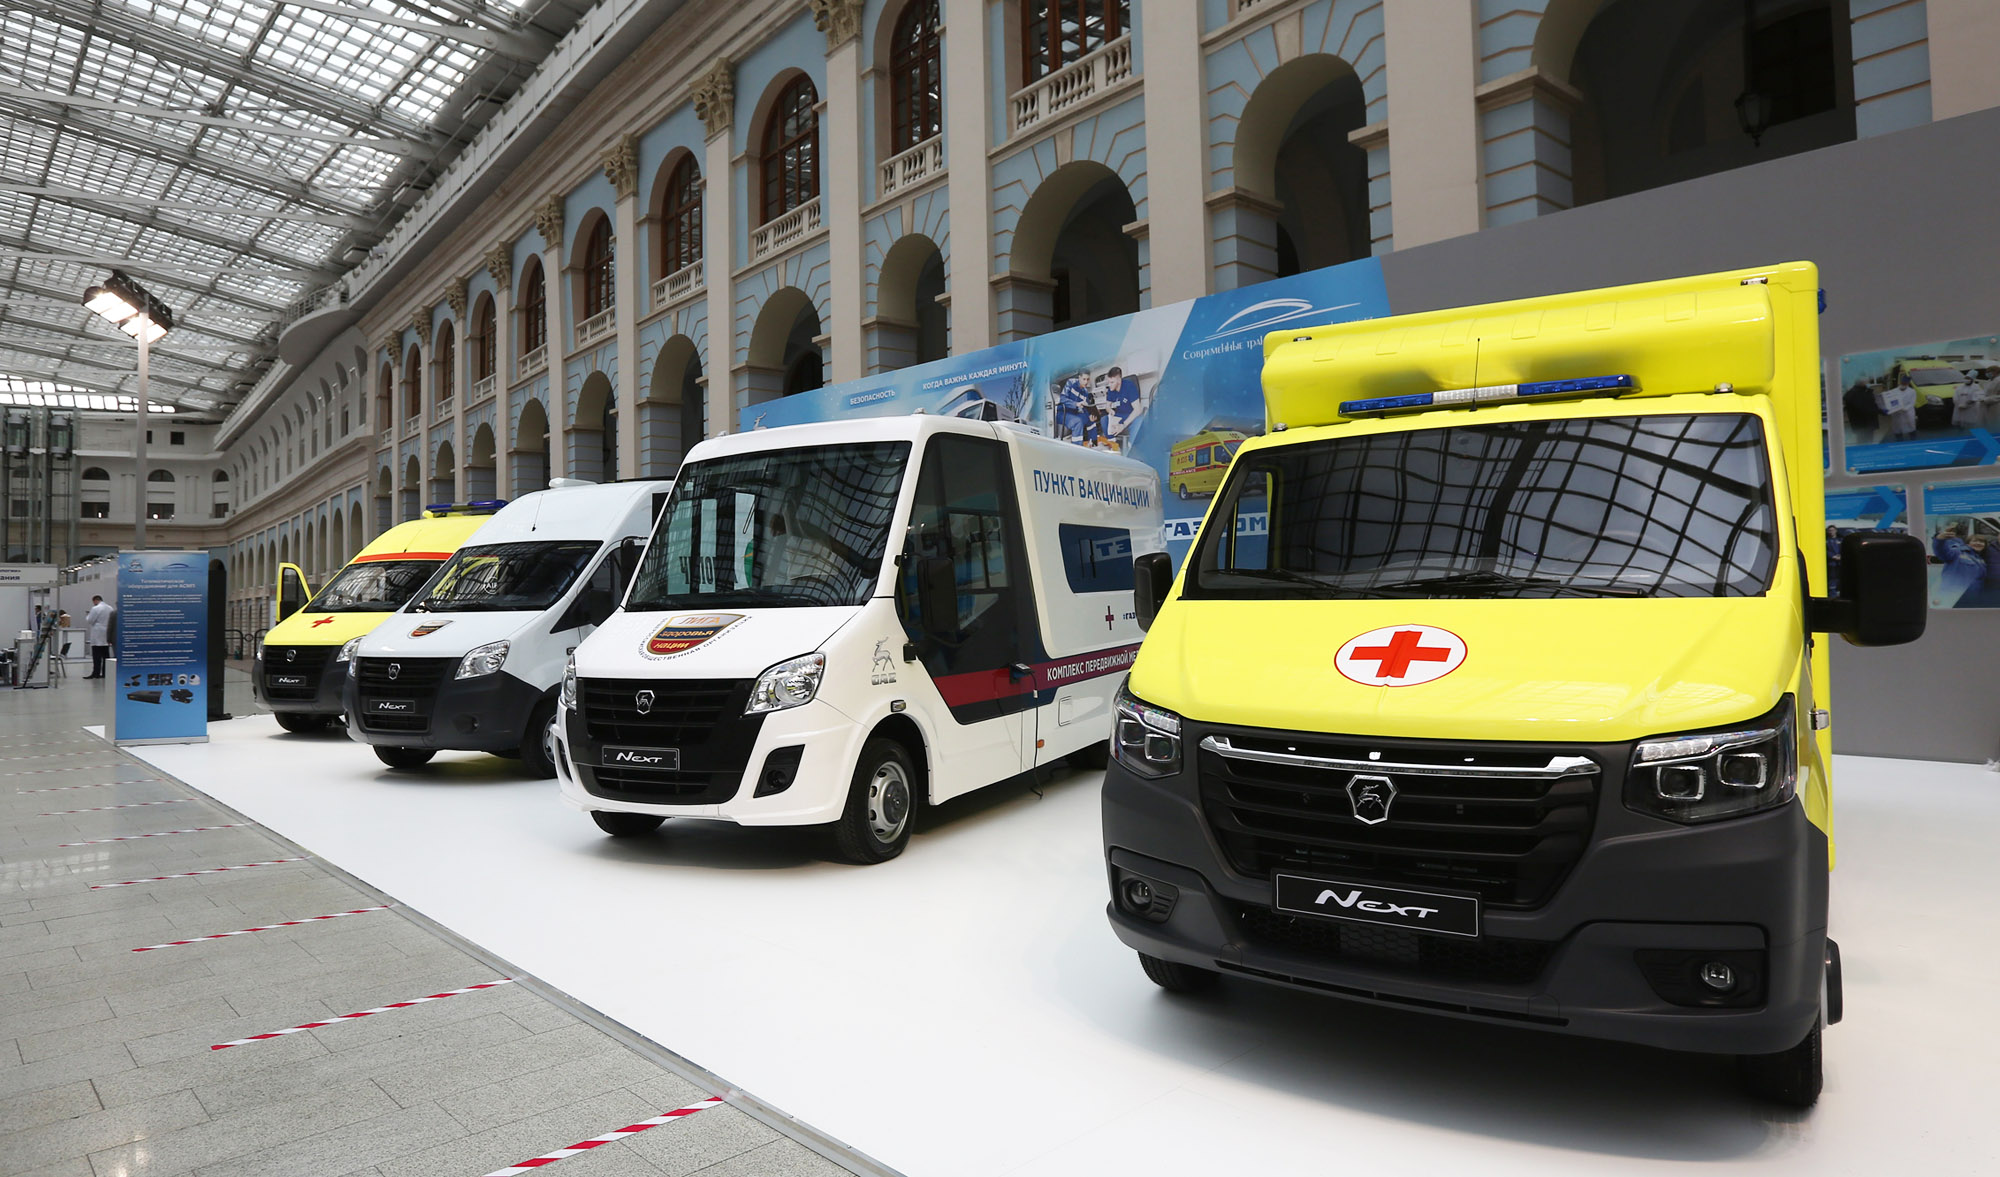 GAZ Group has developed medical vehicles, enhancing work efficiency  of health care institutions under epidemic conditions